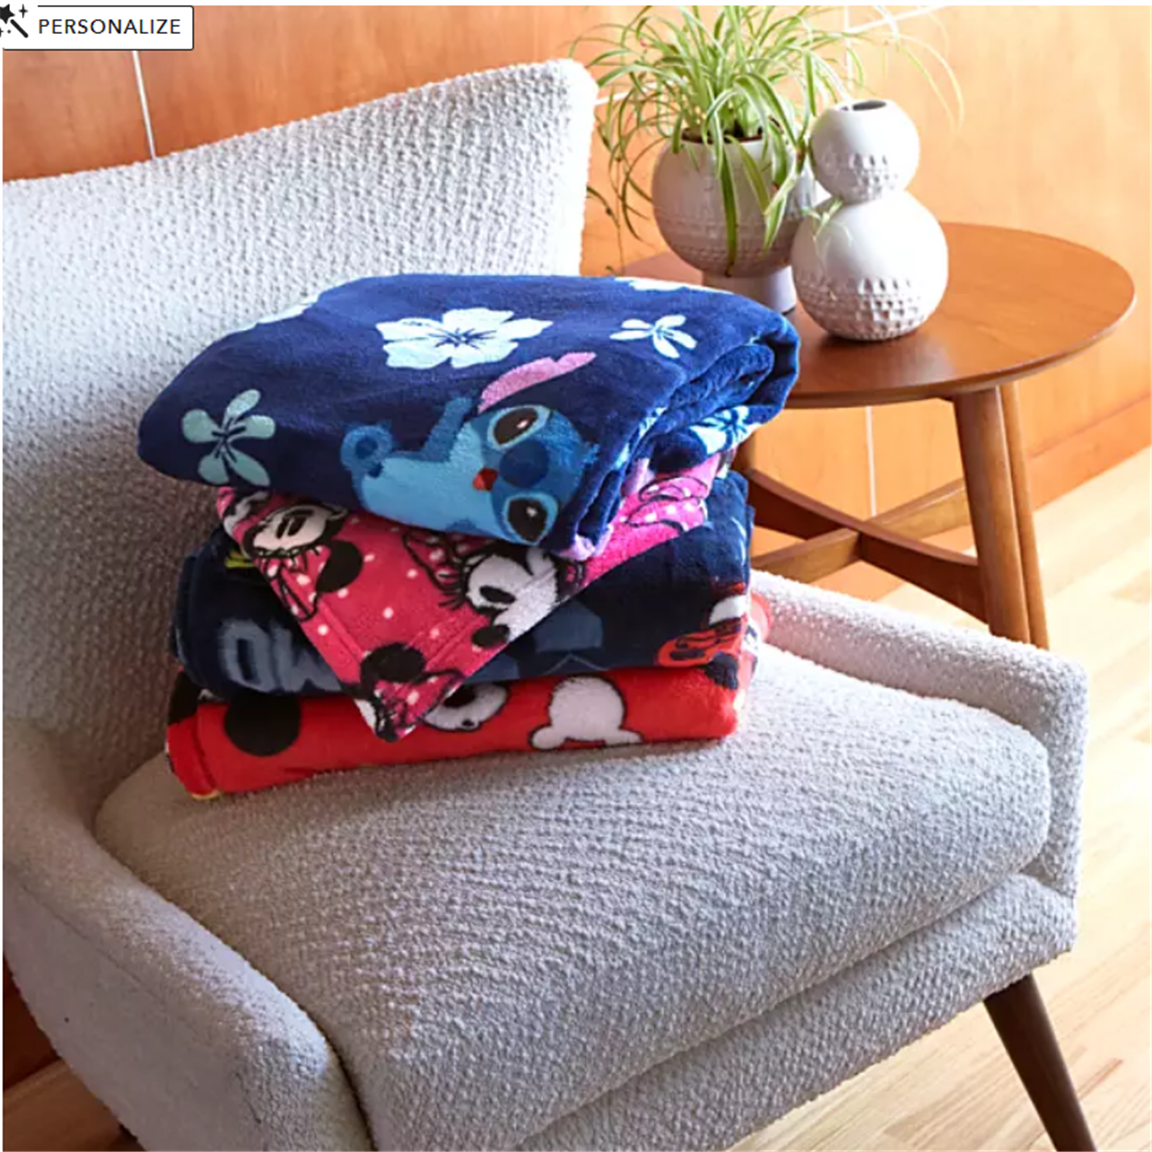 ShopDisney – Save Up To 50% + Take Extra 20% Off! Disney Fleece Throws Only $6.38, Reg $19.95!